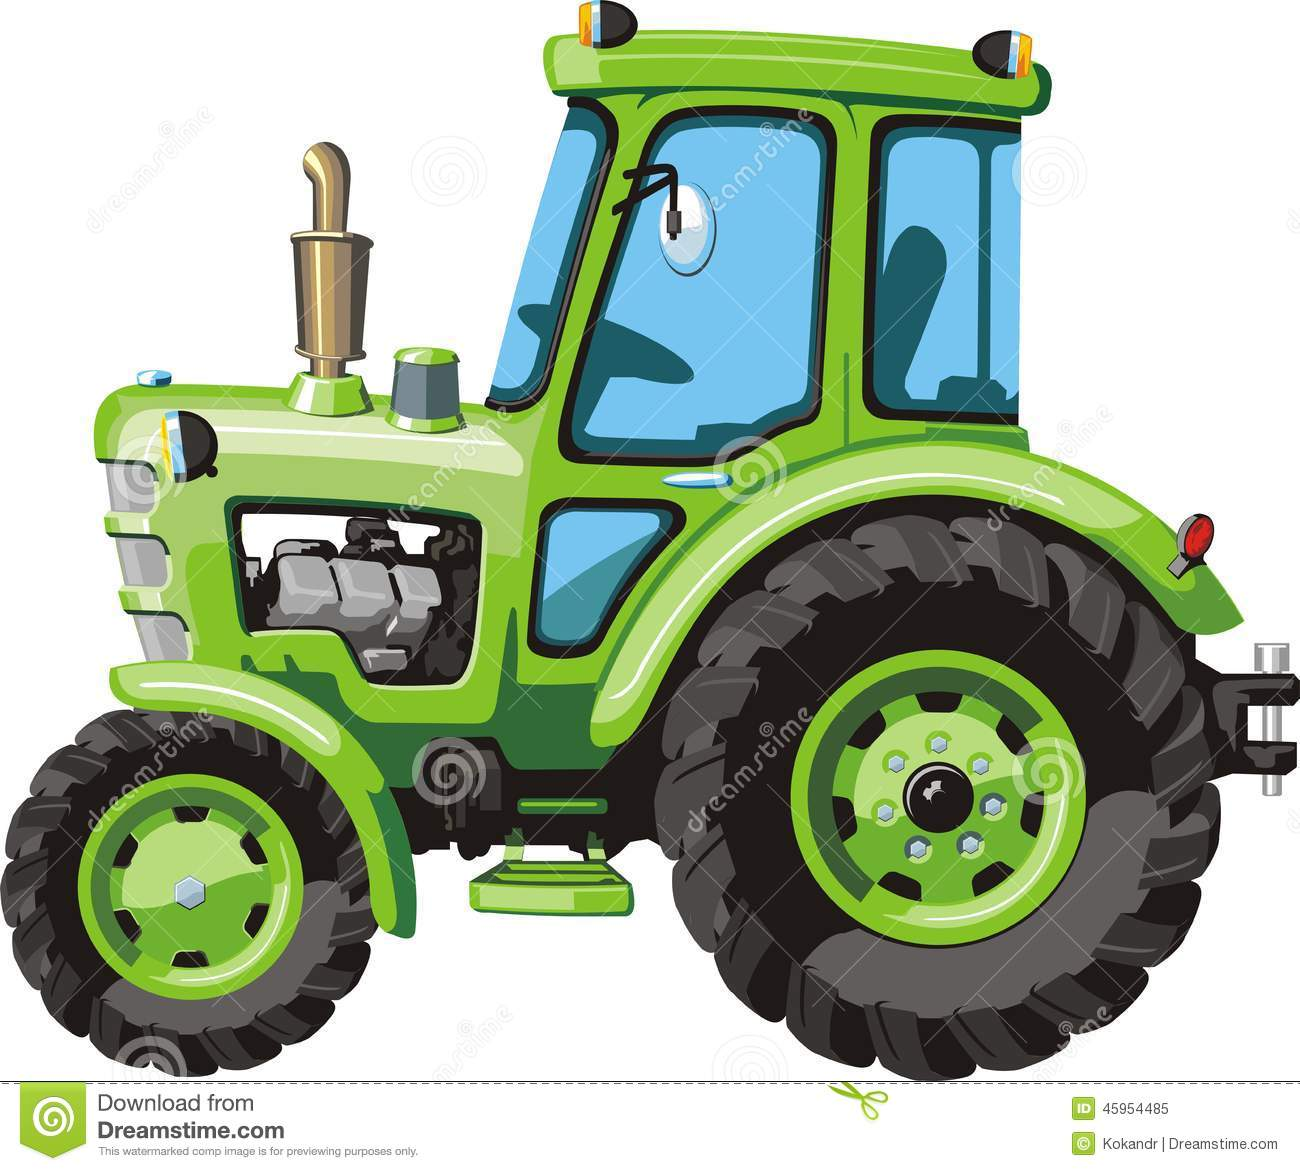 Up The Tractor Green Tractor With Bucket Cartoon : Green cartoon tractor stock vector illustration of